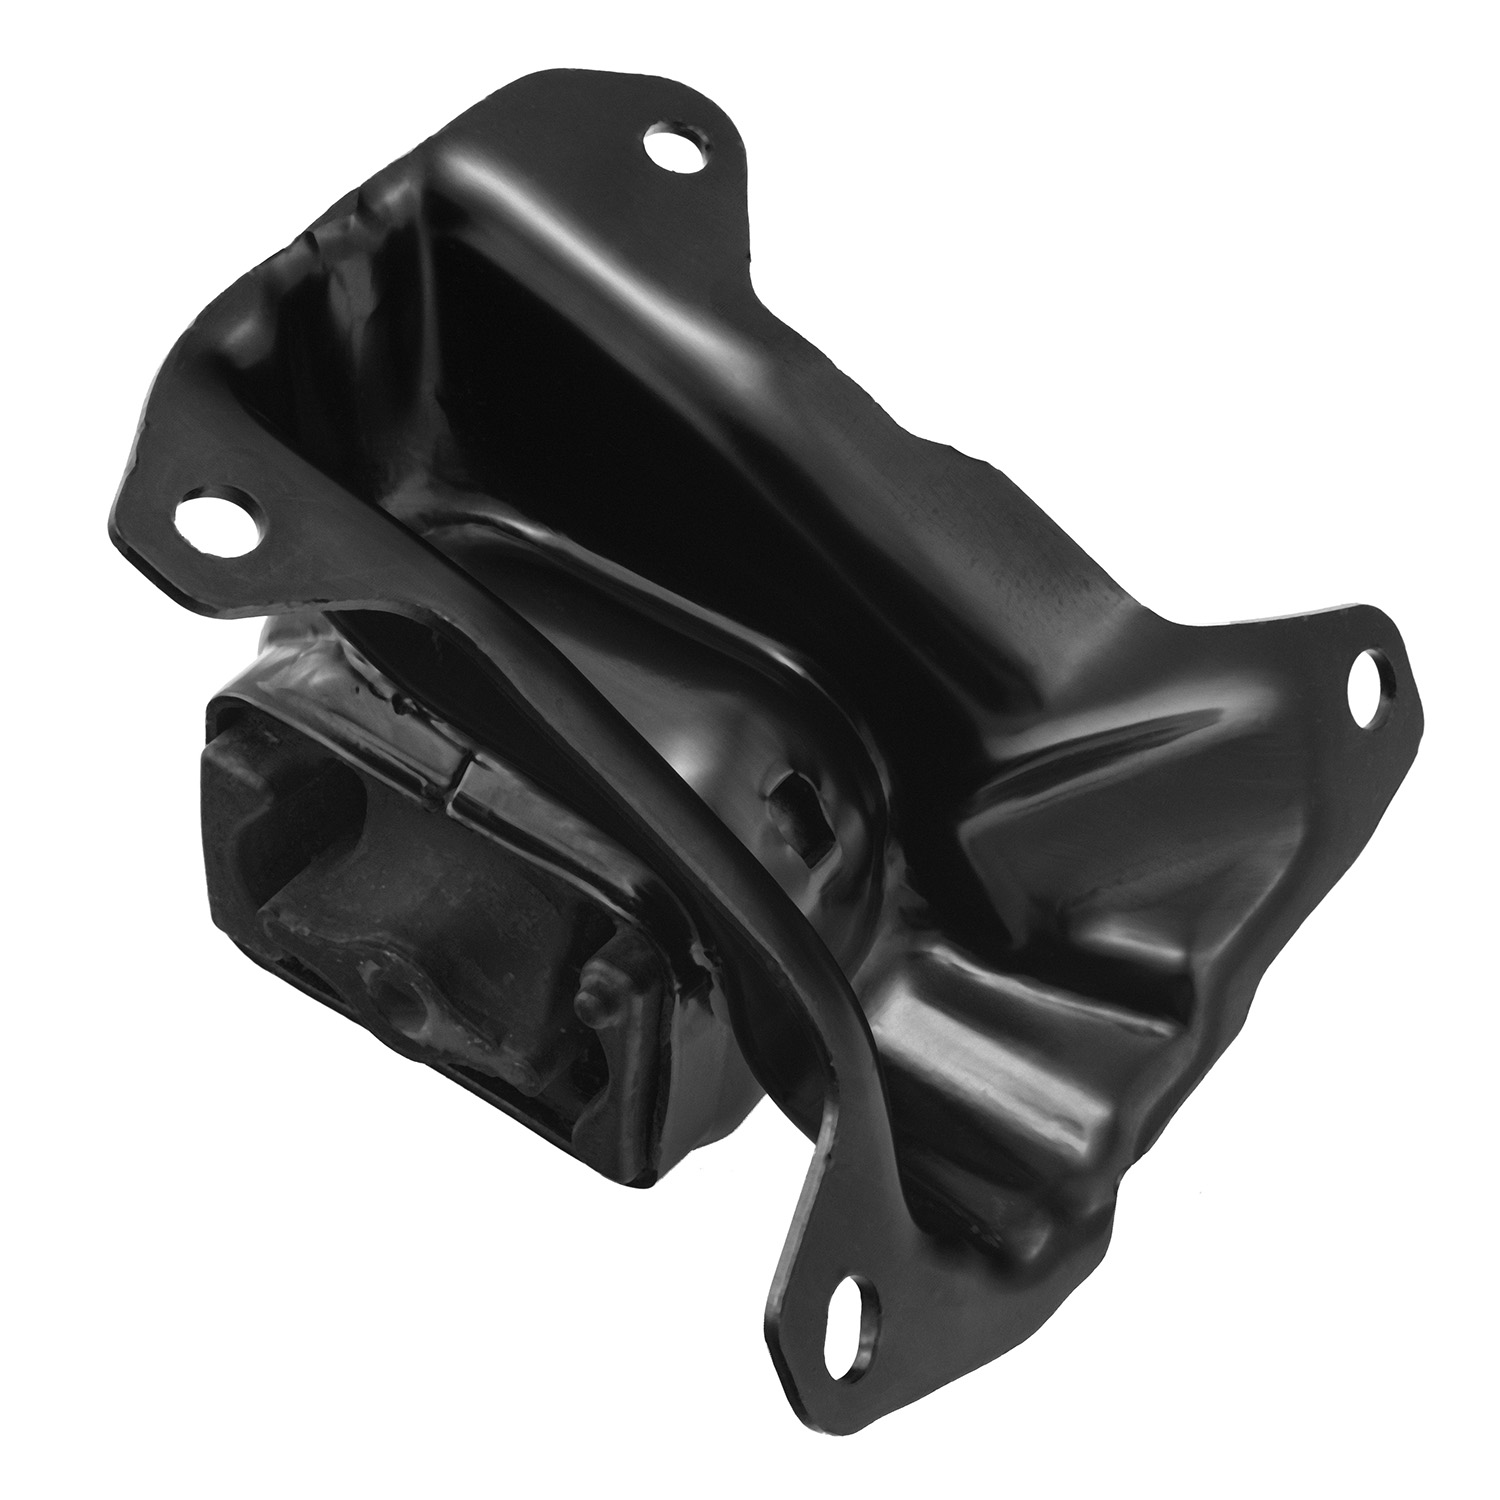 Engine Mount Left For 2008 To 2012 Jeep Liberty KK 3.7L x 17473.49